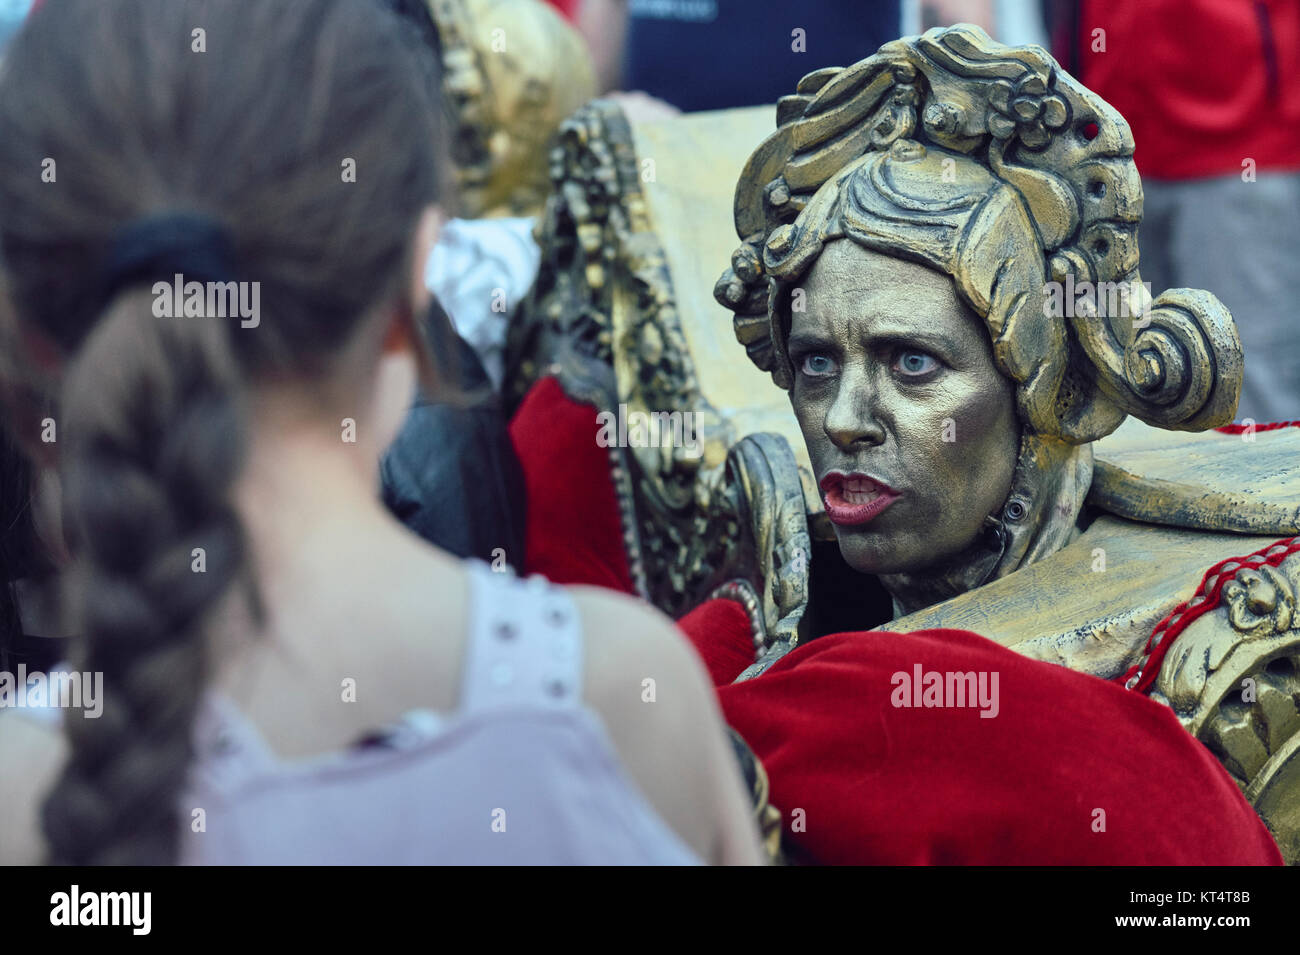 Bucharest, Romania - May 29, 2014: Actress acting as Baroque couch ornament interacts with people throughout The - Stock Image